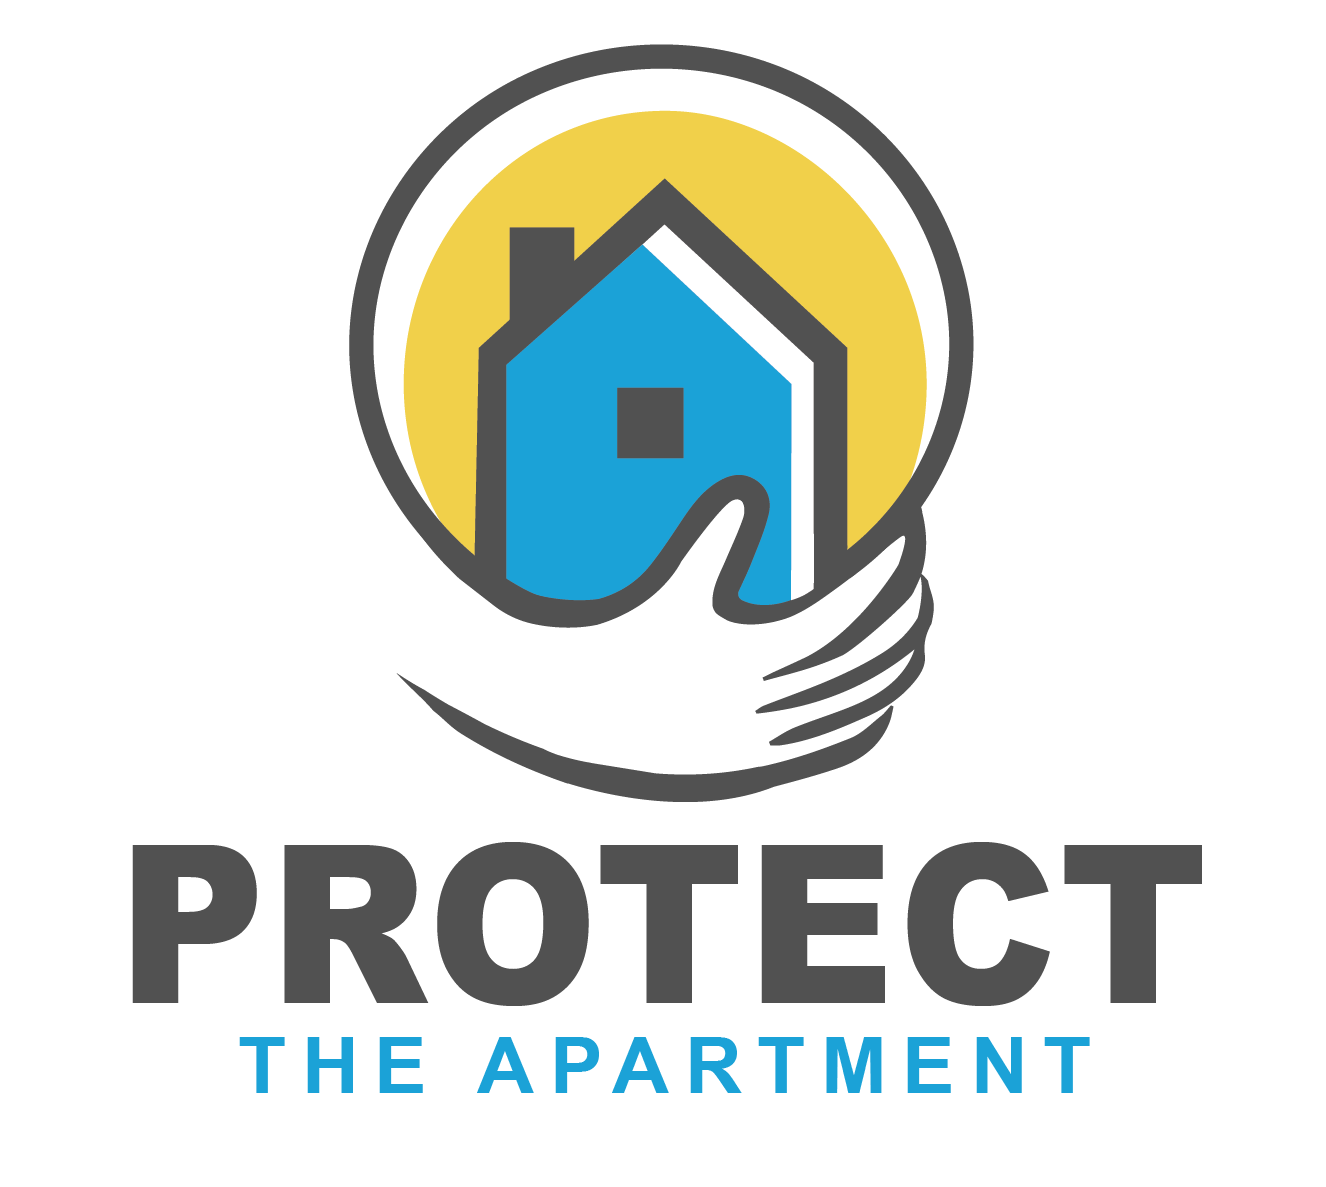 Protect the Apartment